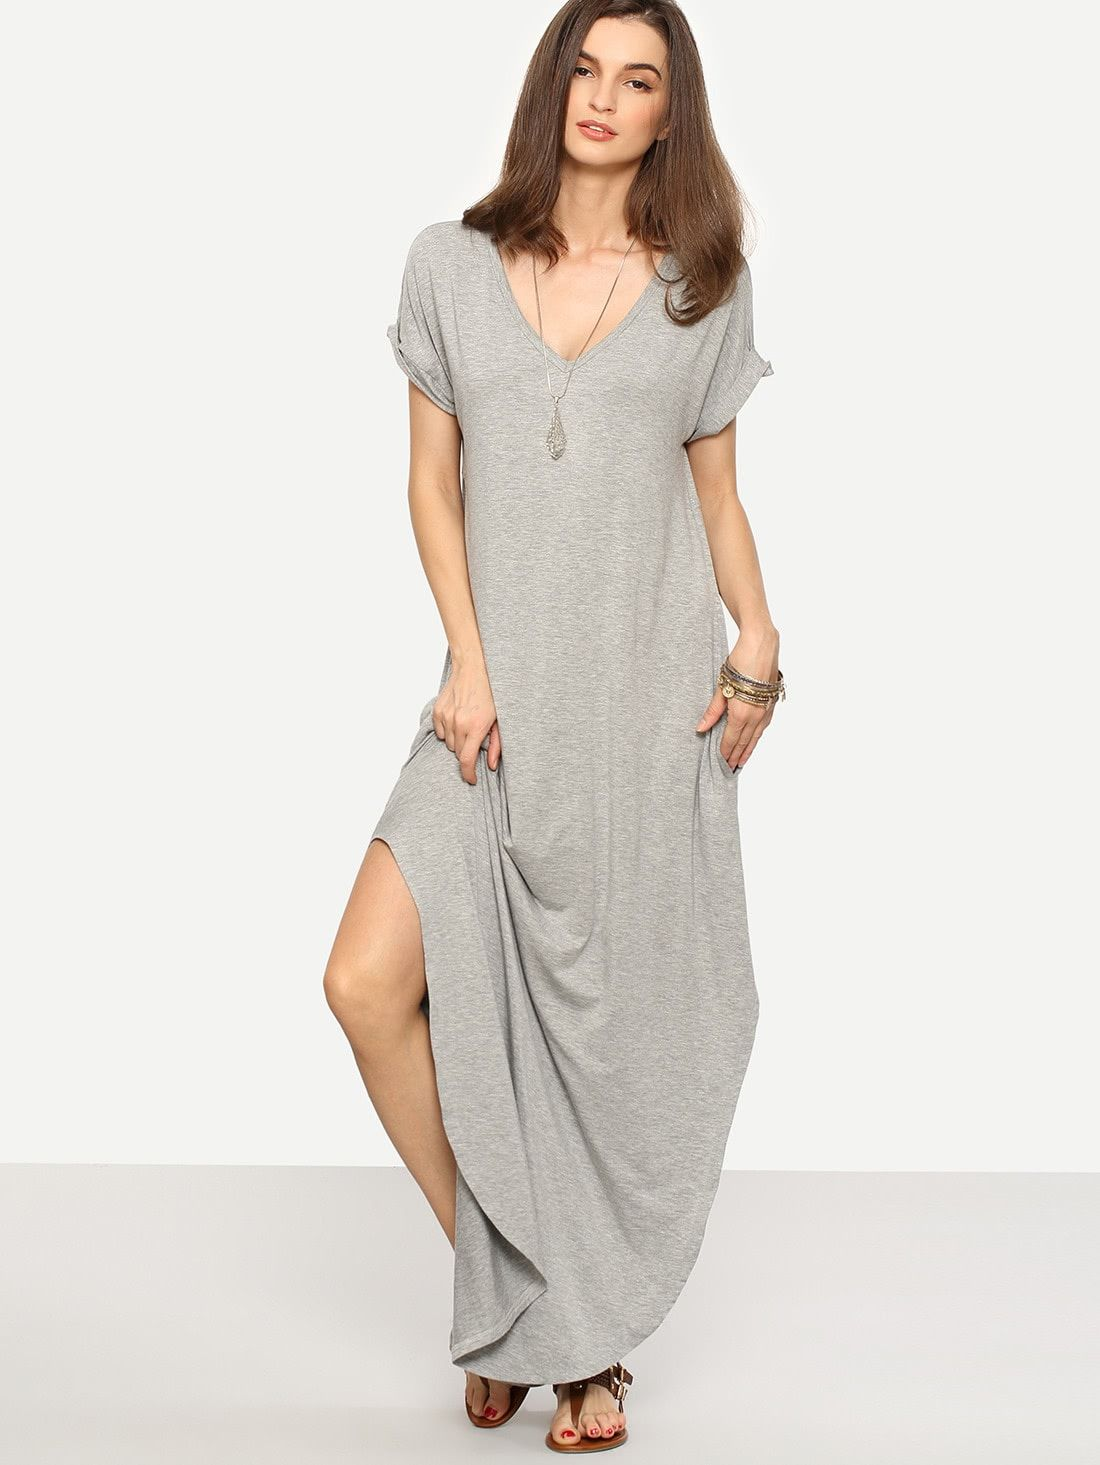 51549629619 Boho and Casual Tunic Plain Shift Straight and Slit V Neck Short Sleeve  Roll Up Sleeve